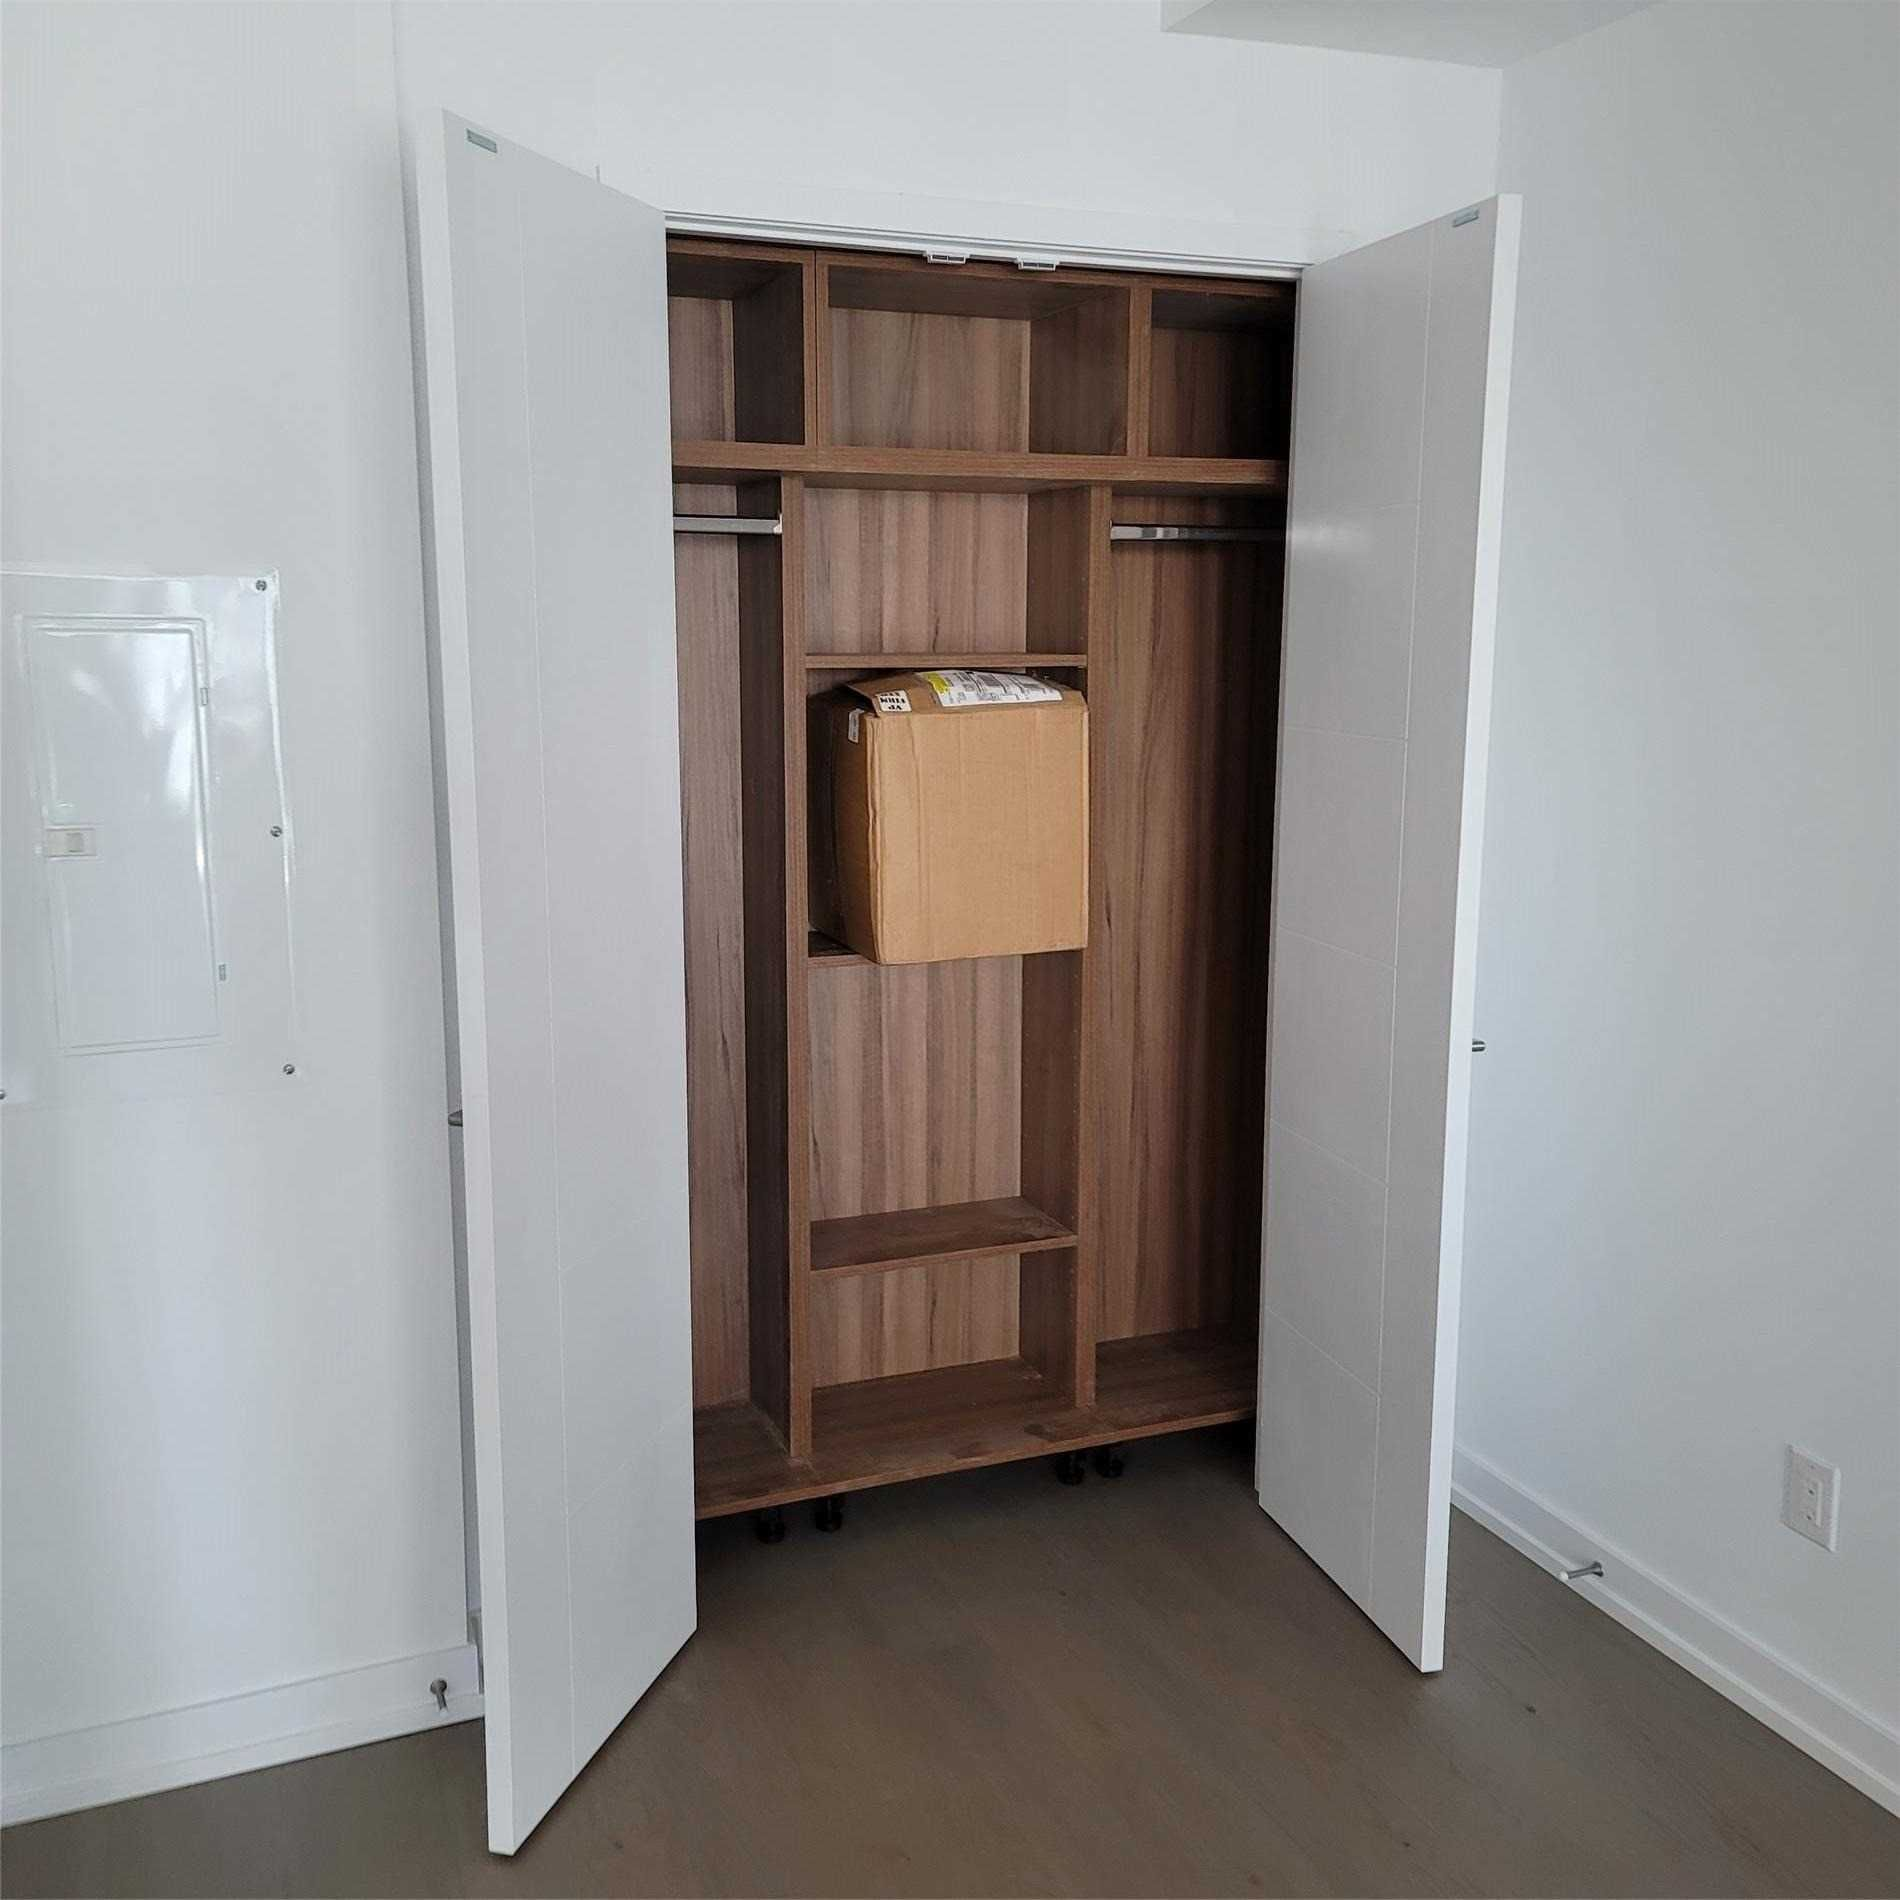 488 University Ave, unit 2909 for rent in Toronto - image #2